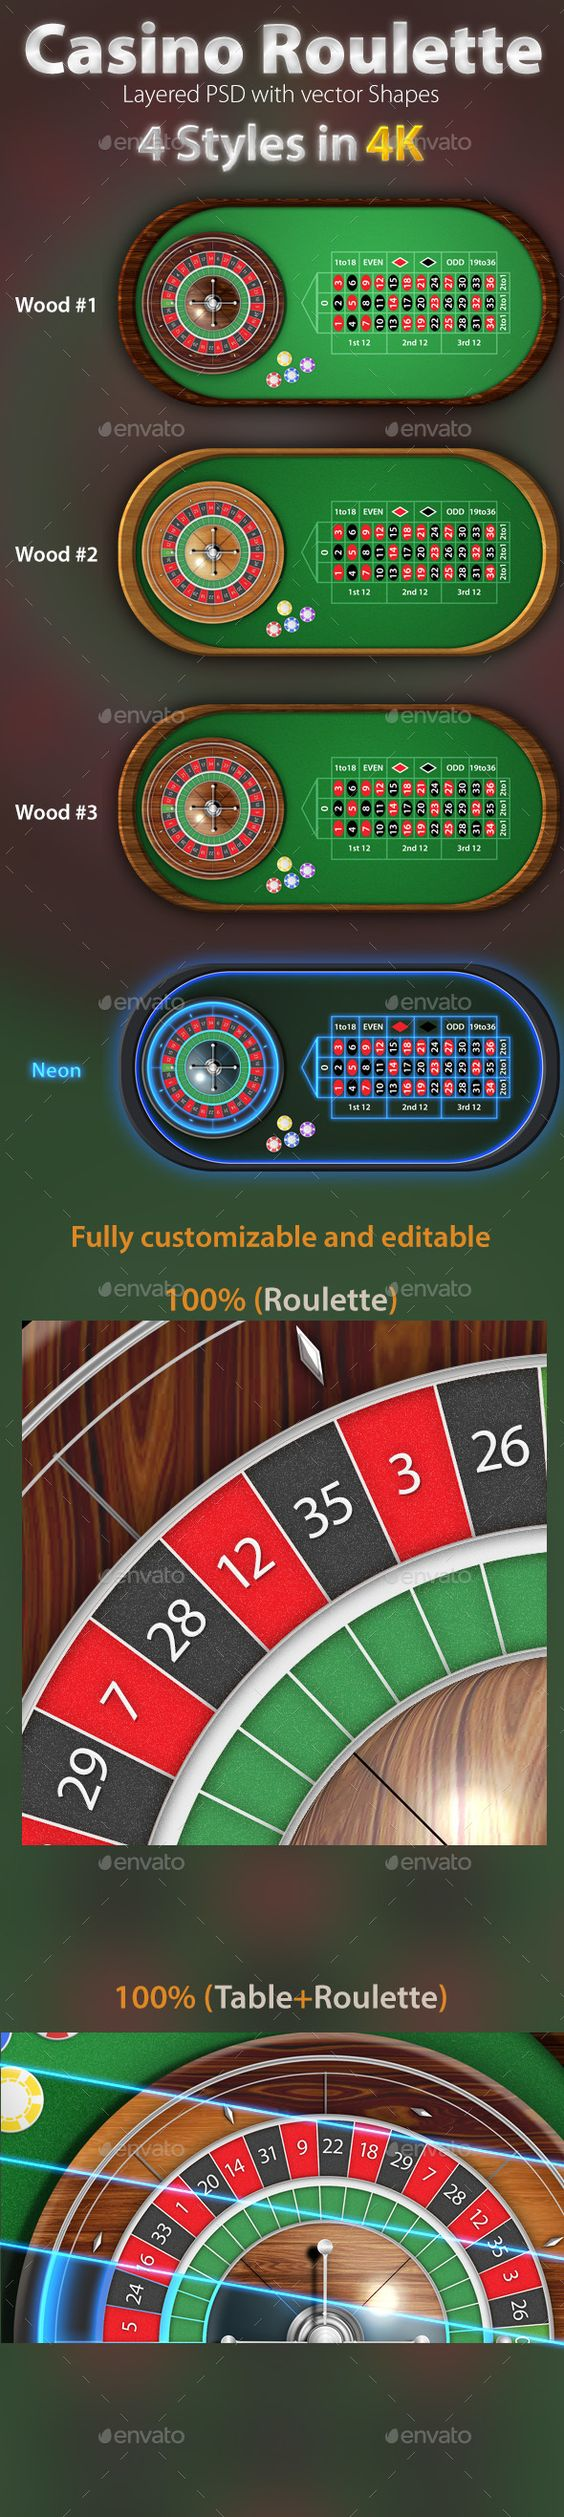 Photoshop gambling shapes casino clip art